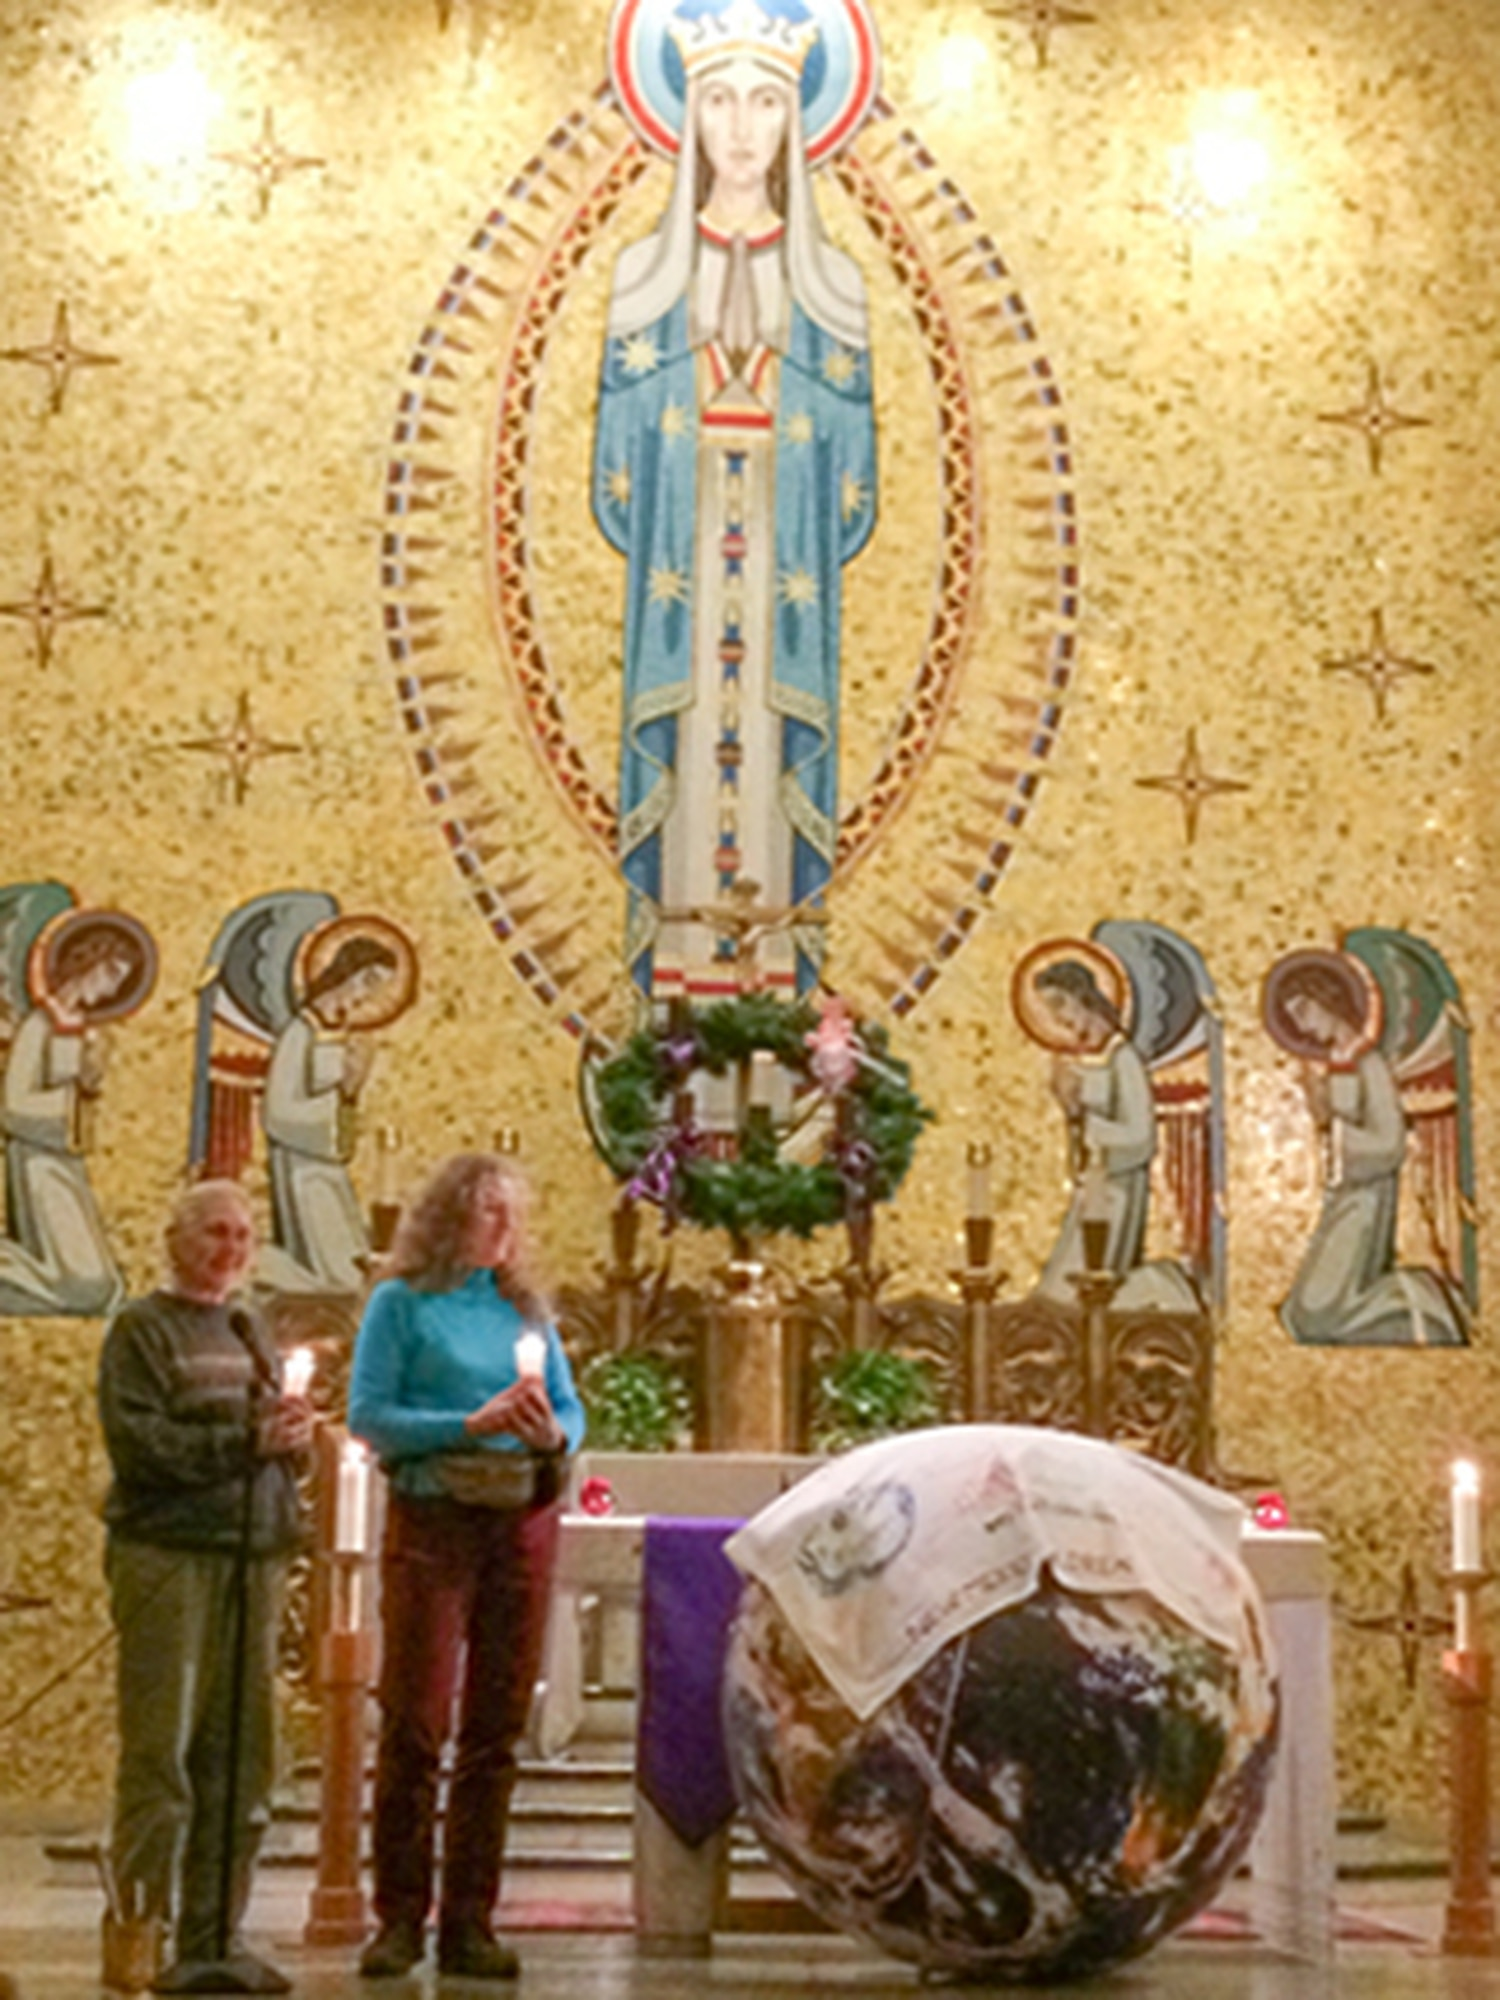 About 100 people came to an interfaith prayer service on the eve of the Paris climate talks last month in Albuquerque.